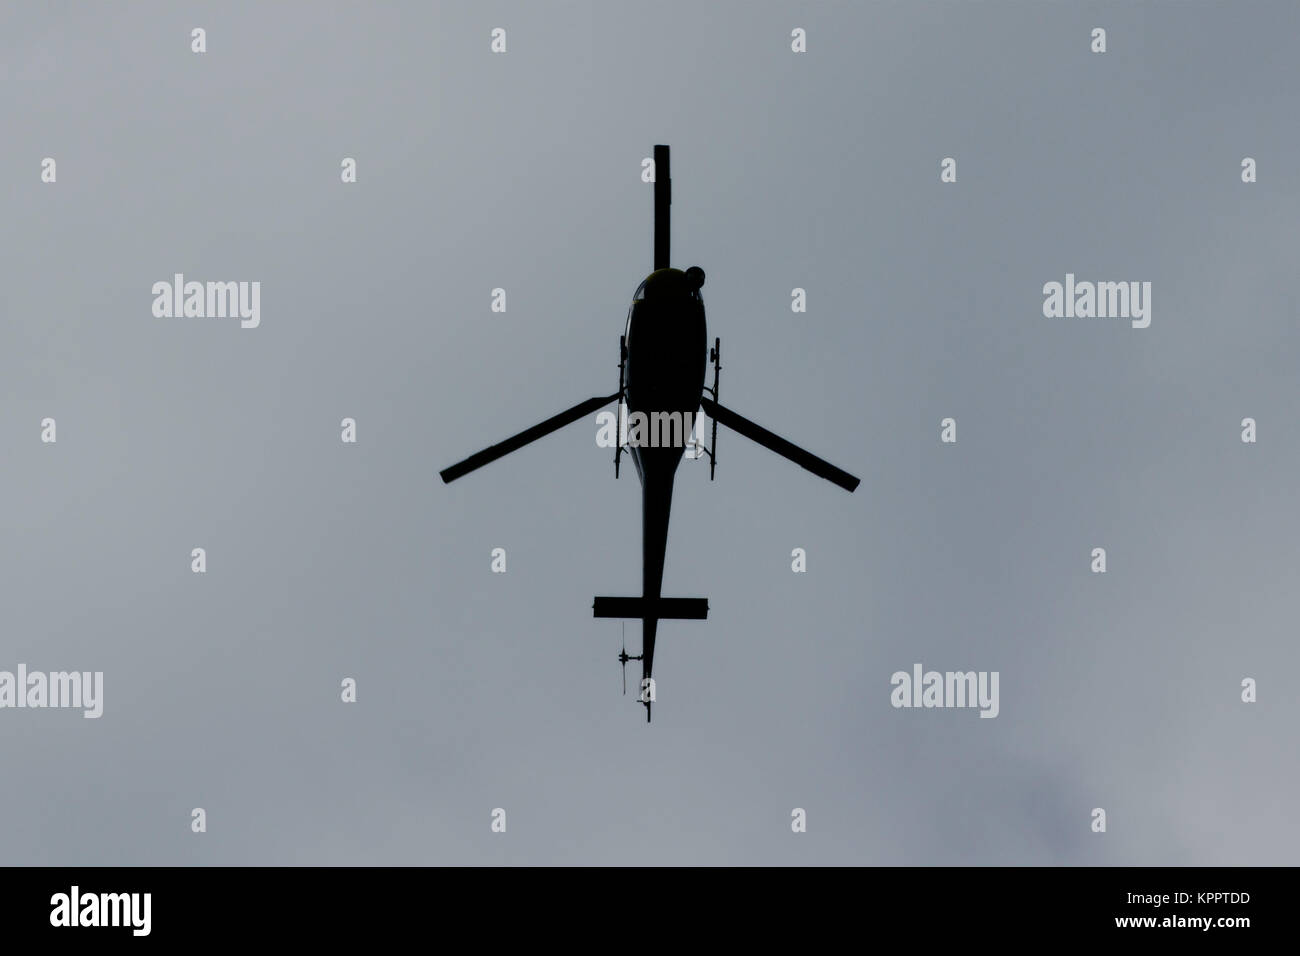 Police Scotland helicopter from the air support unit, in flight, hovering in the sky above Glasgow, Scotland - Stock Image